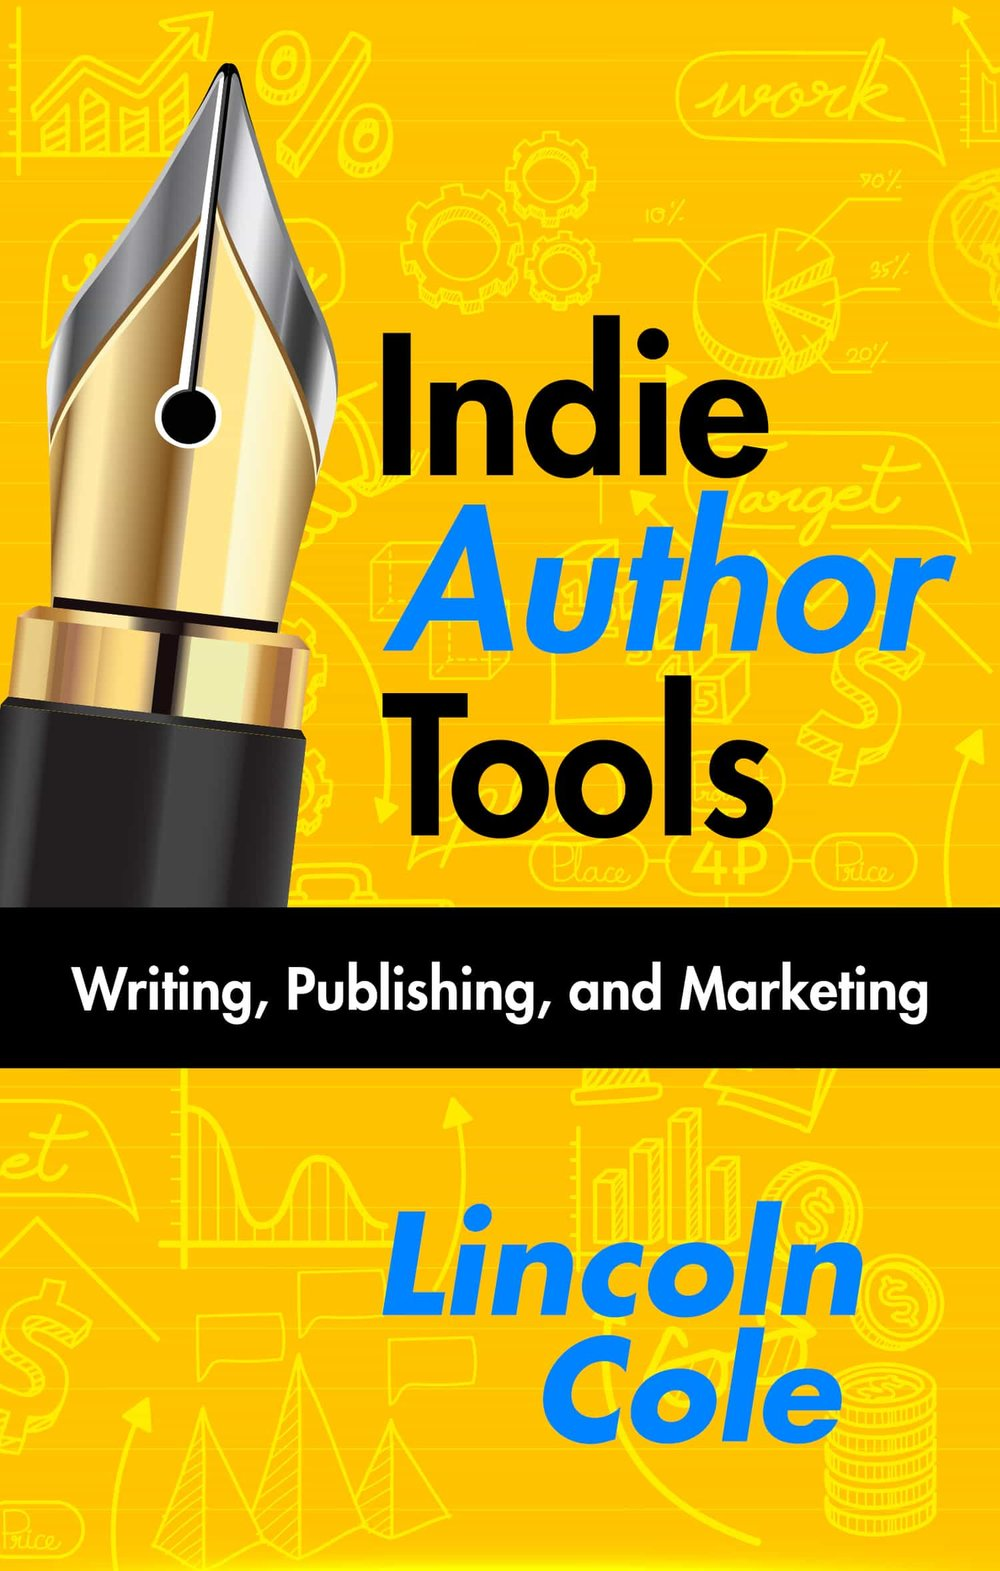 Indie Author Tools - Interested in writing a book but not sure where to start? It can seem like a daunting task to try and put together your own book, and the craziest thing about it is that writing it isn't even the most difficult part. Nowadays you have to know how to publish and market on your own if you intend to sell any copies at all.Don't worry, though, because I'm here to help. I've published more than twenty books on my own, and I've helped other authors publish many more. I've learned a lot of tips and tricks along the way, and this guide is intended to help anyone new to the craft to jump in feet first and release a successful novel.